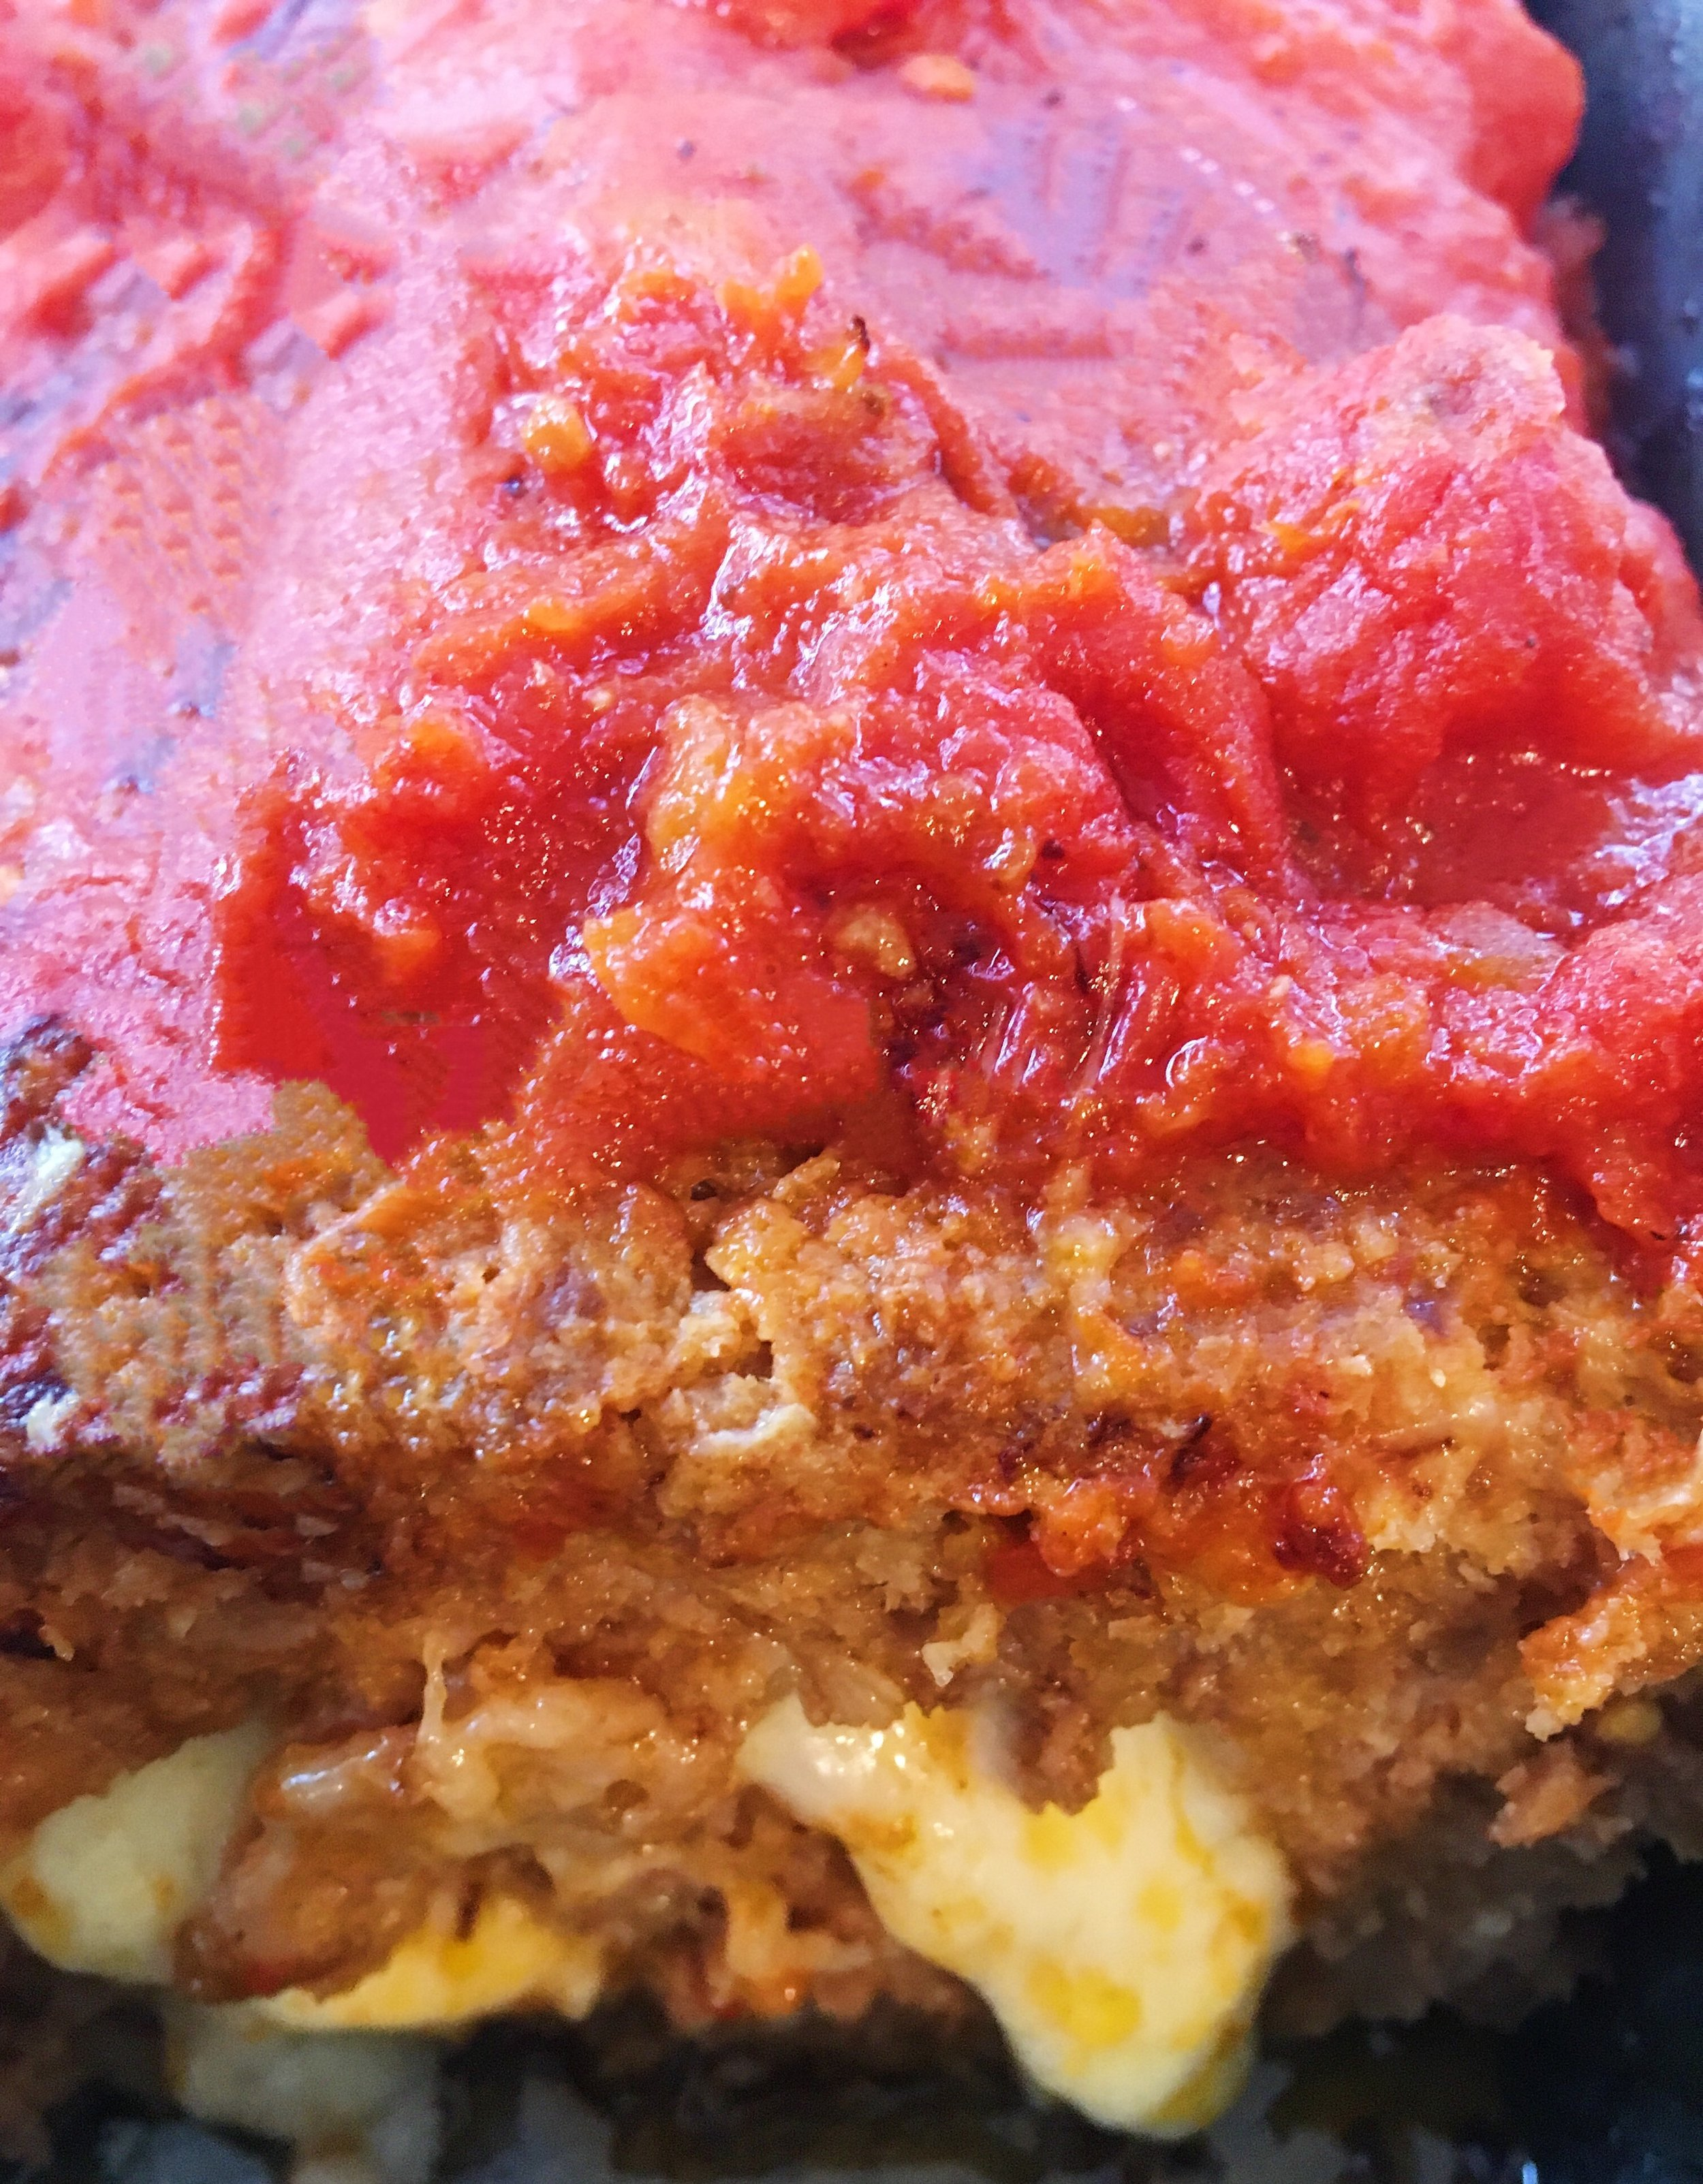 meatloaf recipe fashionablefoodieny